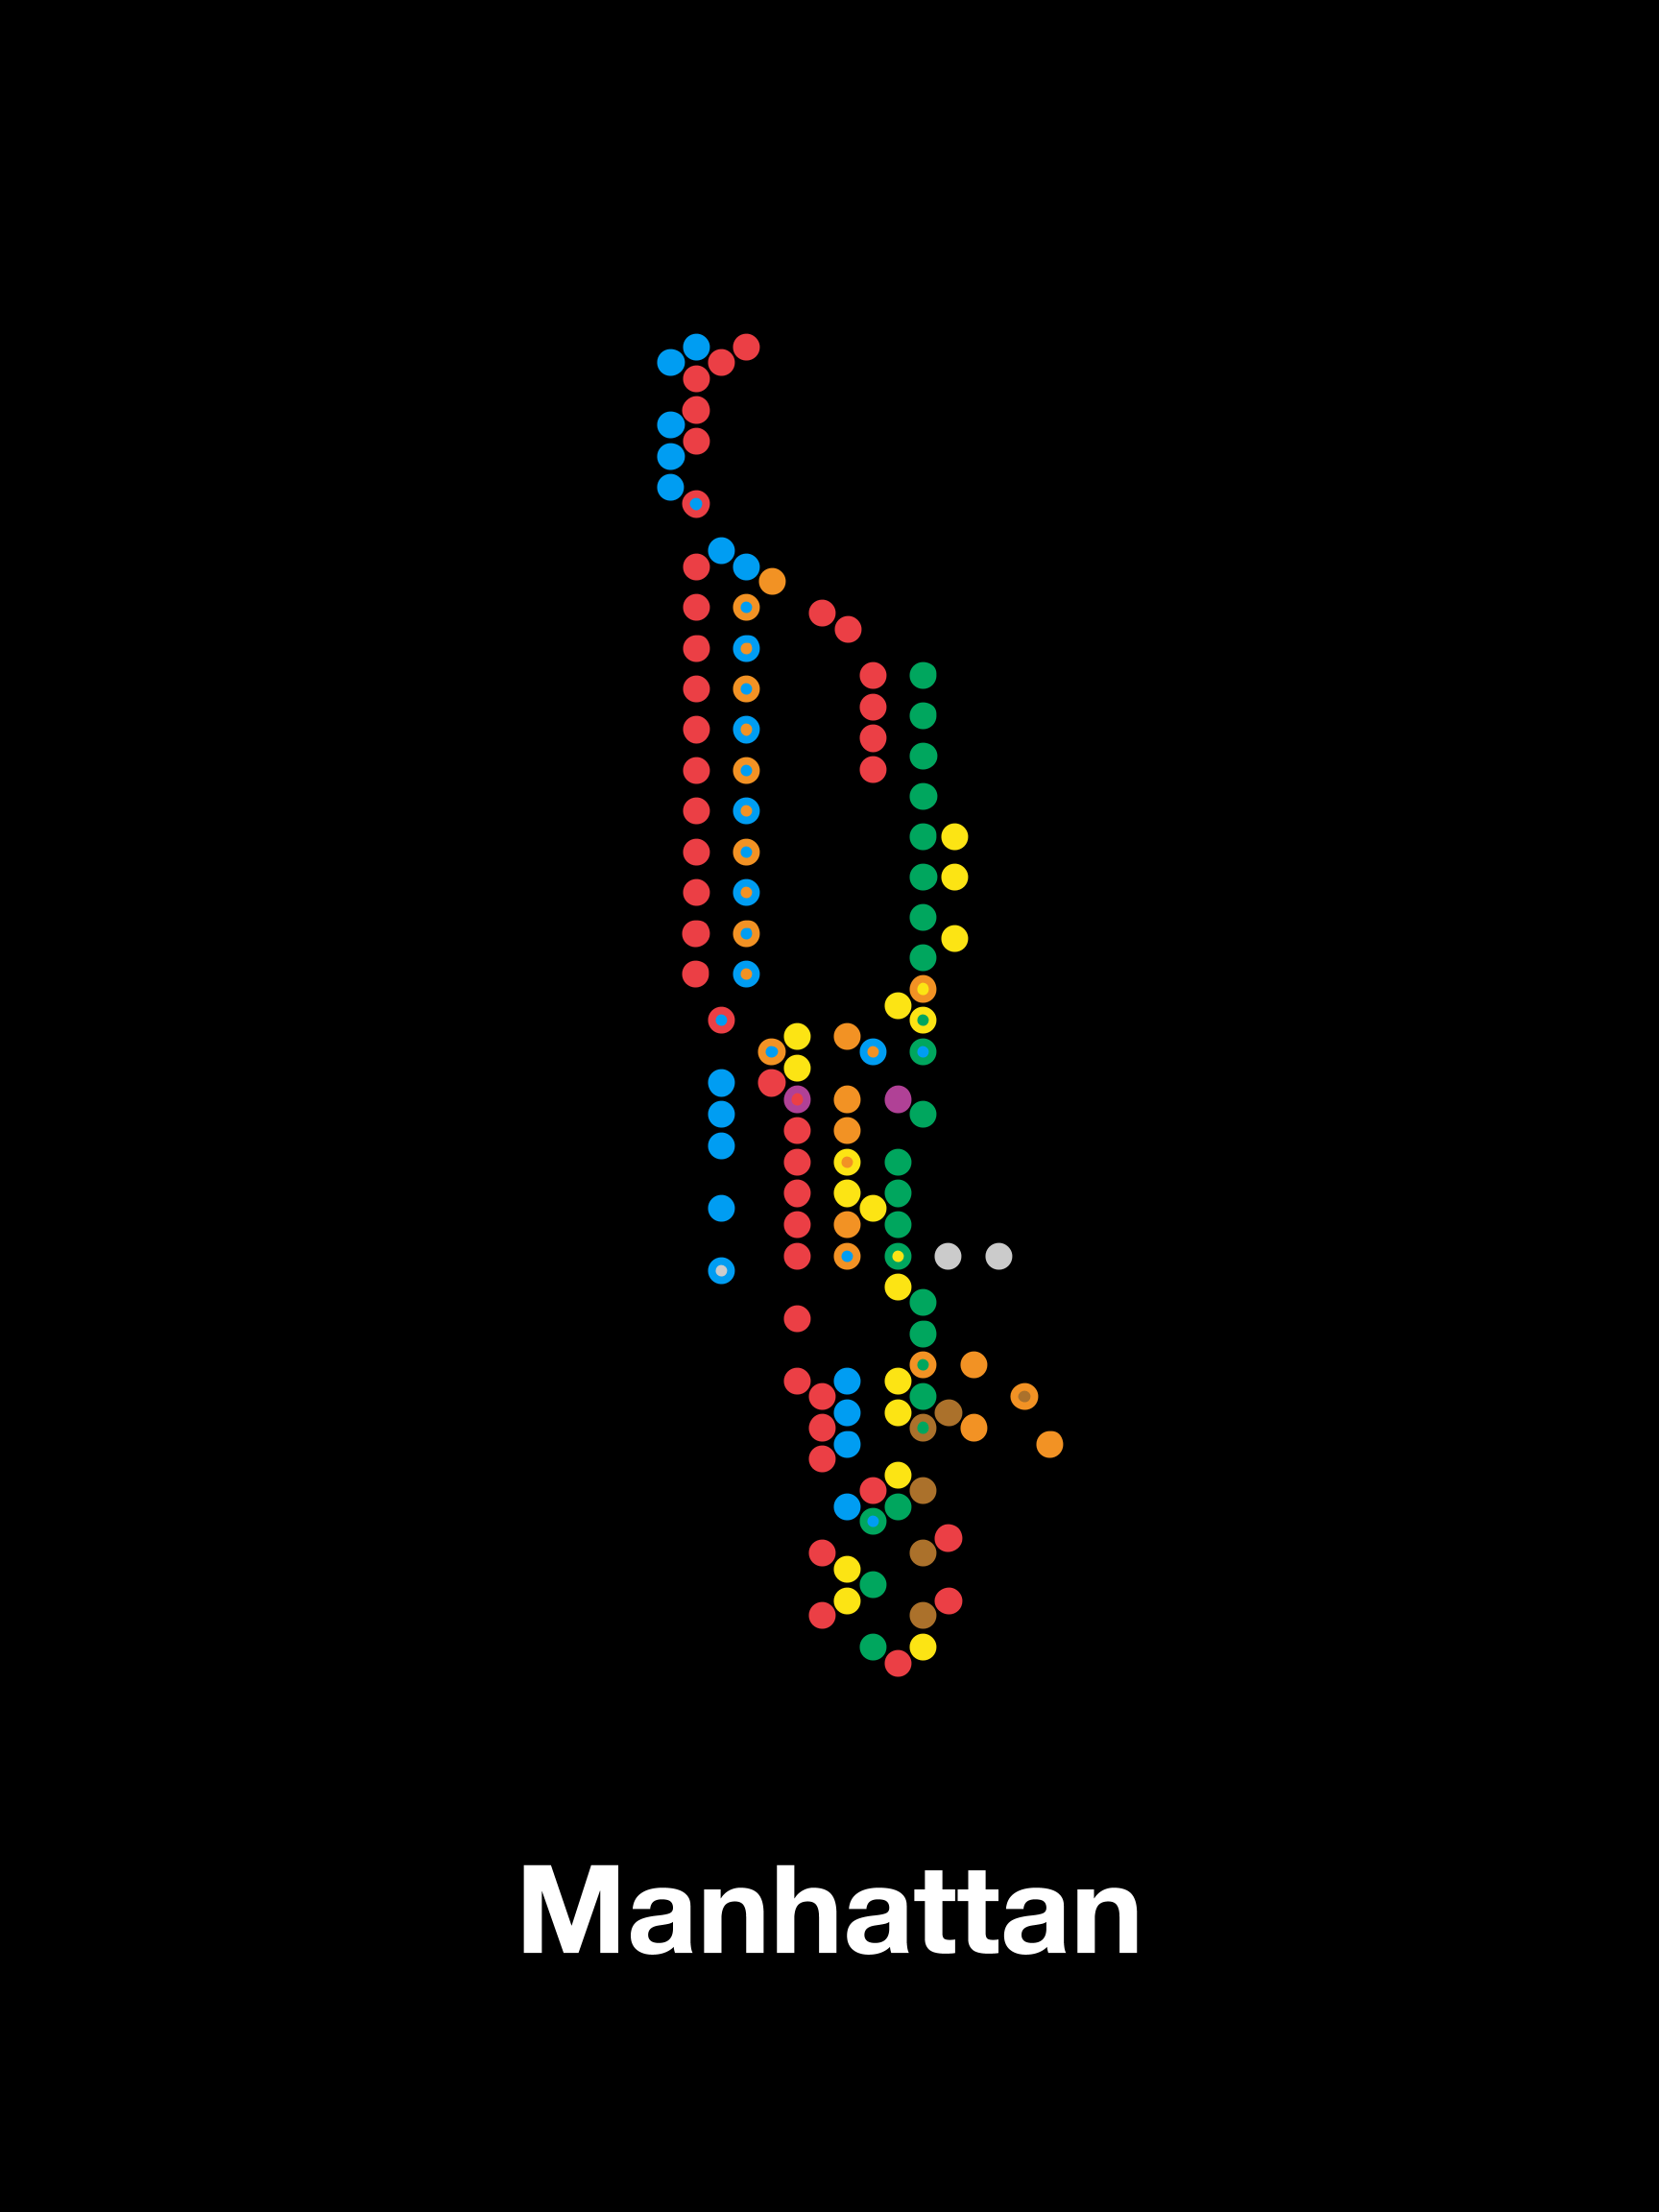 manhattansubway.png